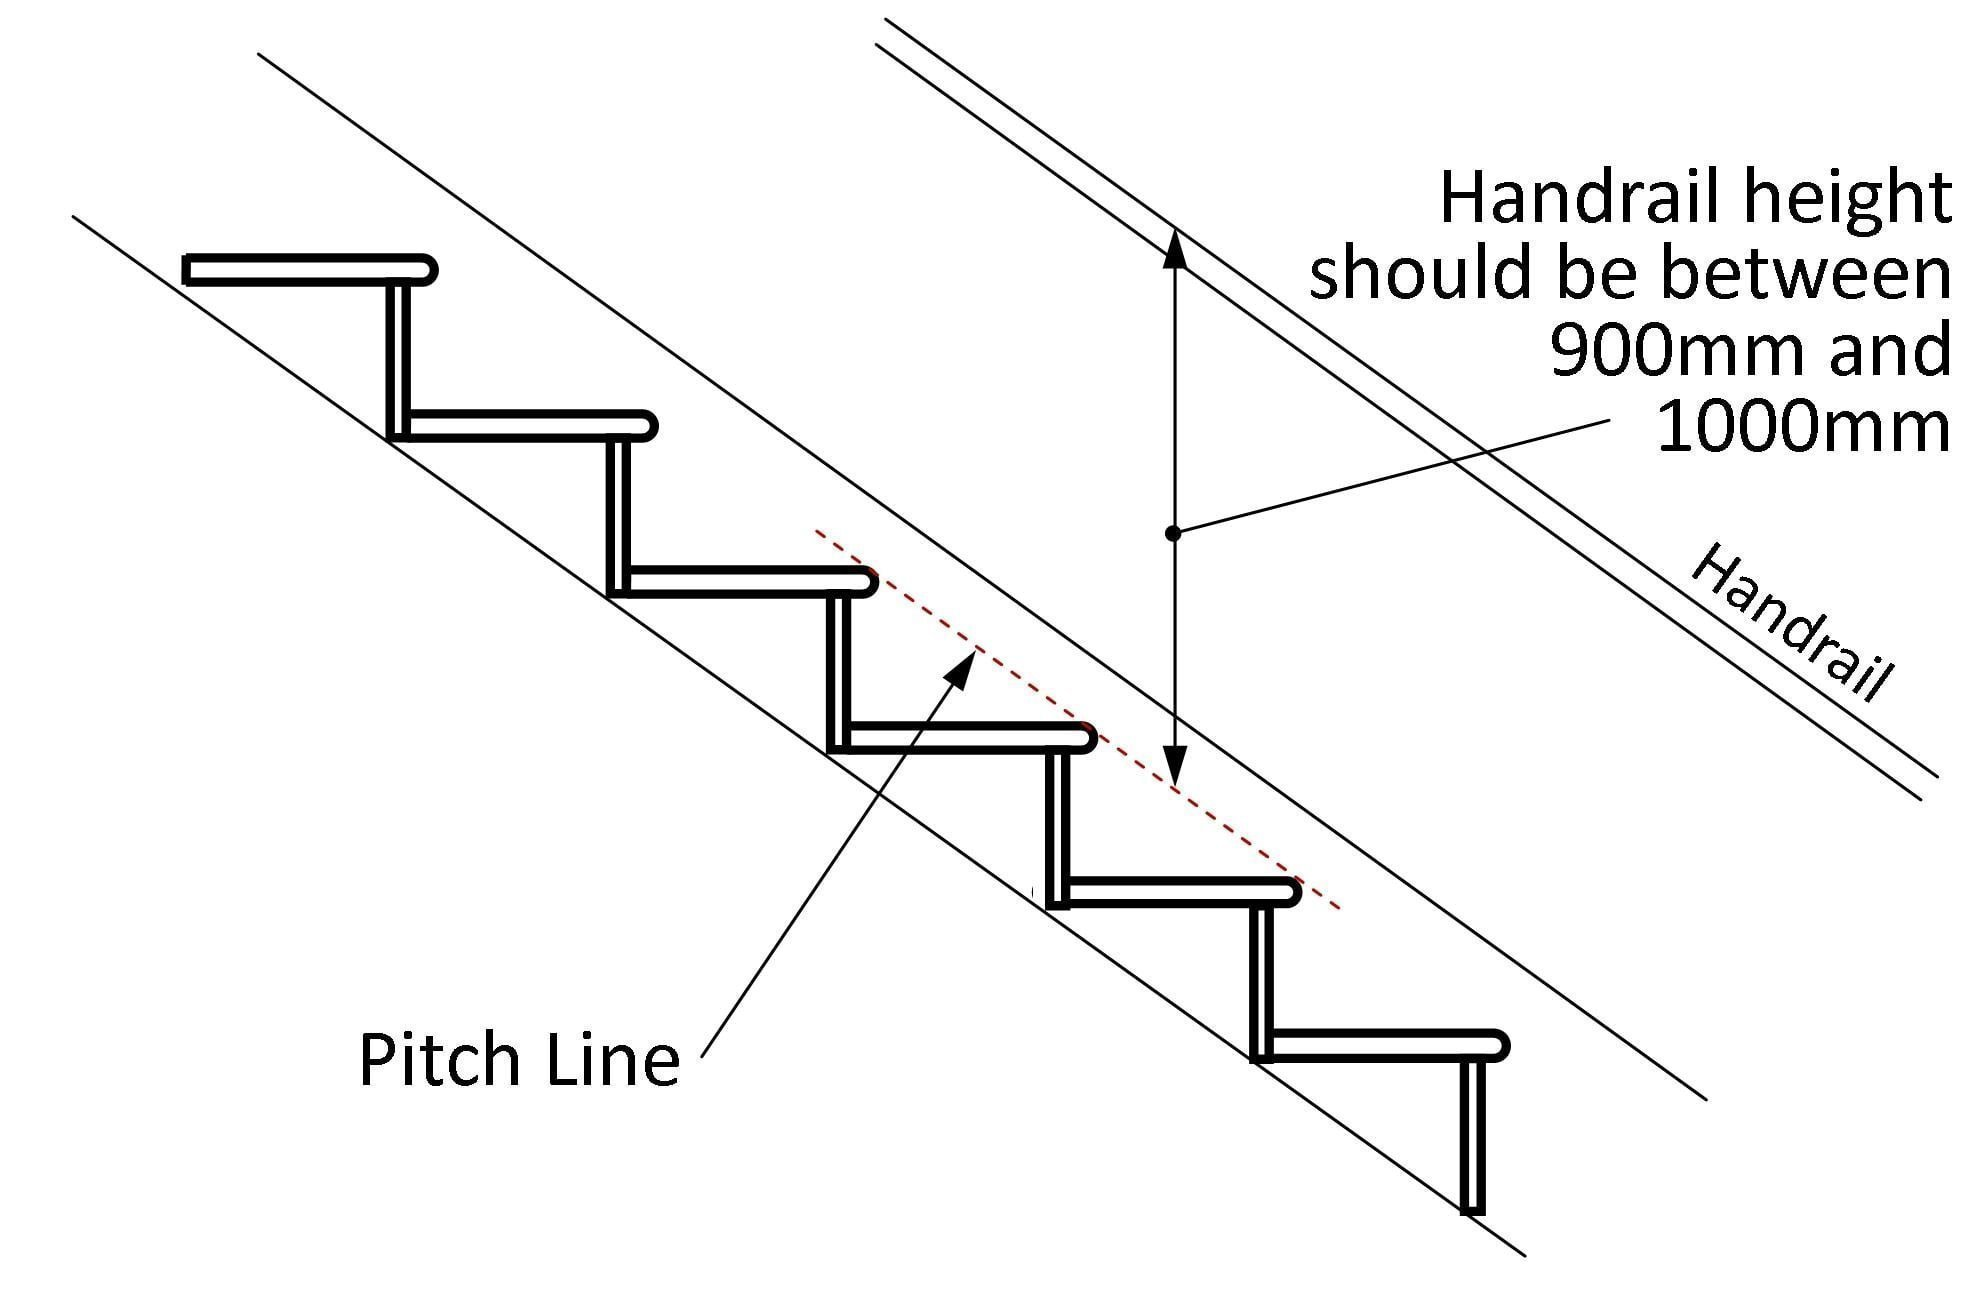 Handrail For Stairs Regulations